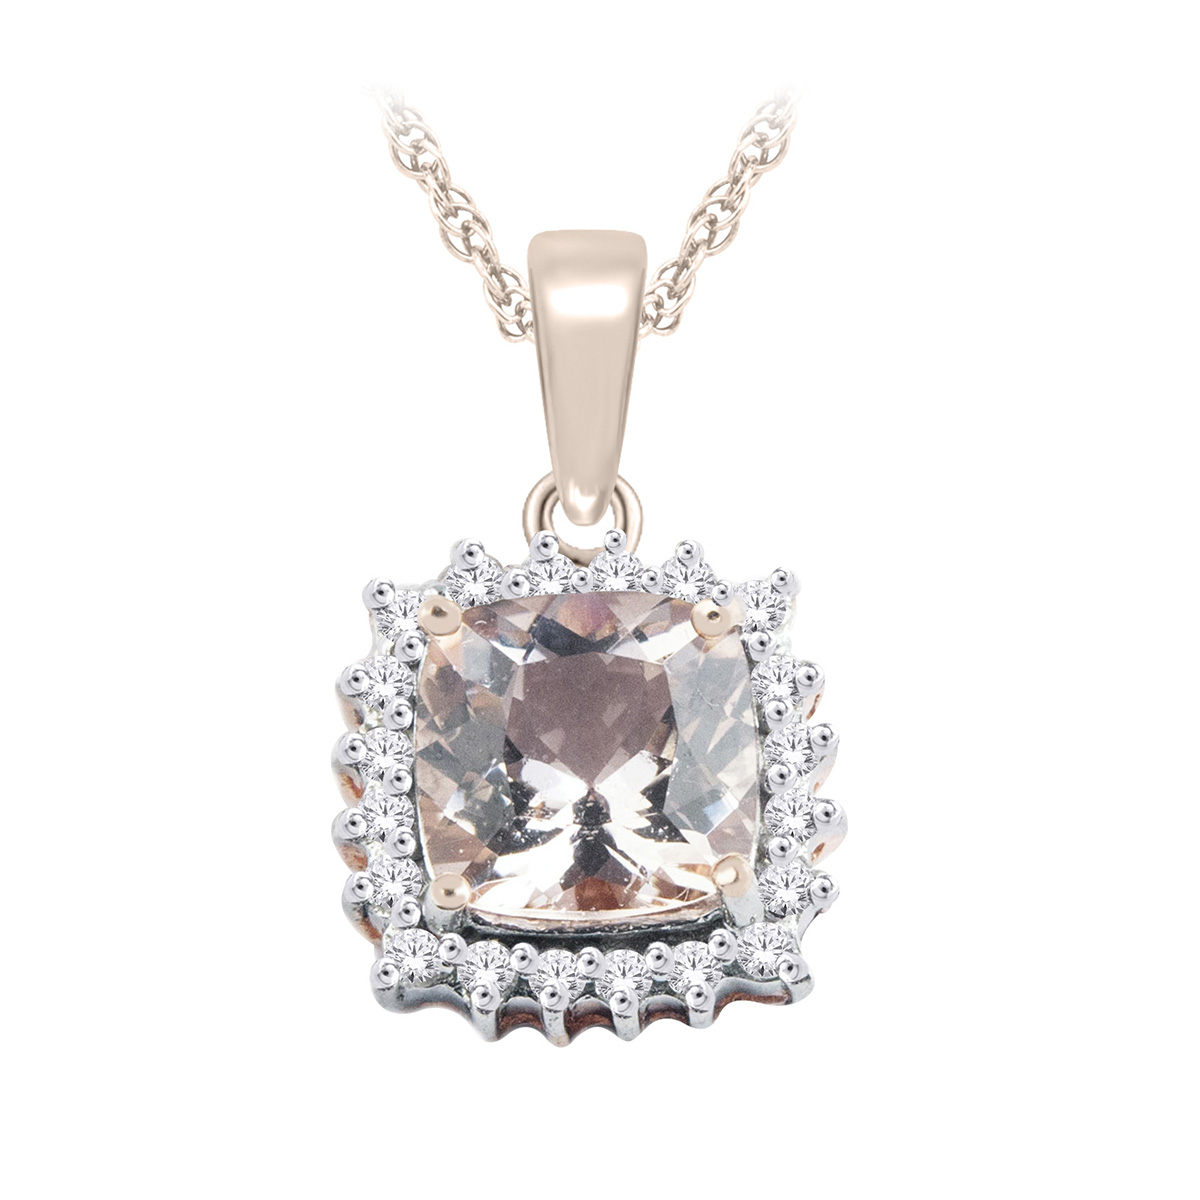 10 Karat Rose Gold Morganite and Diamond Necklace